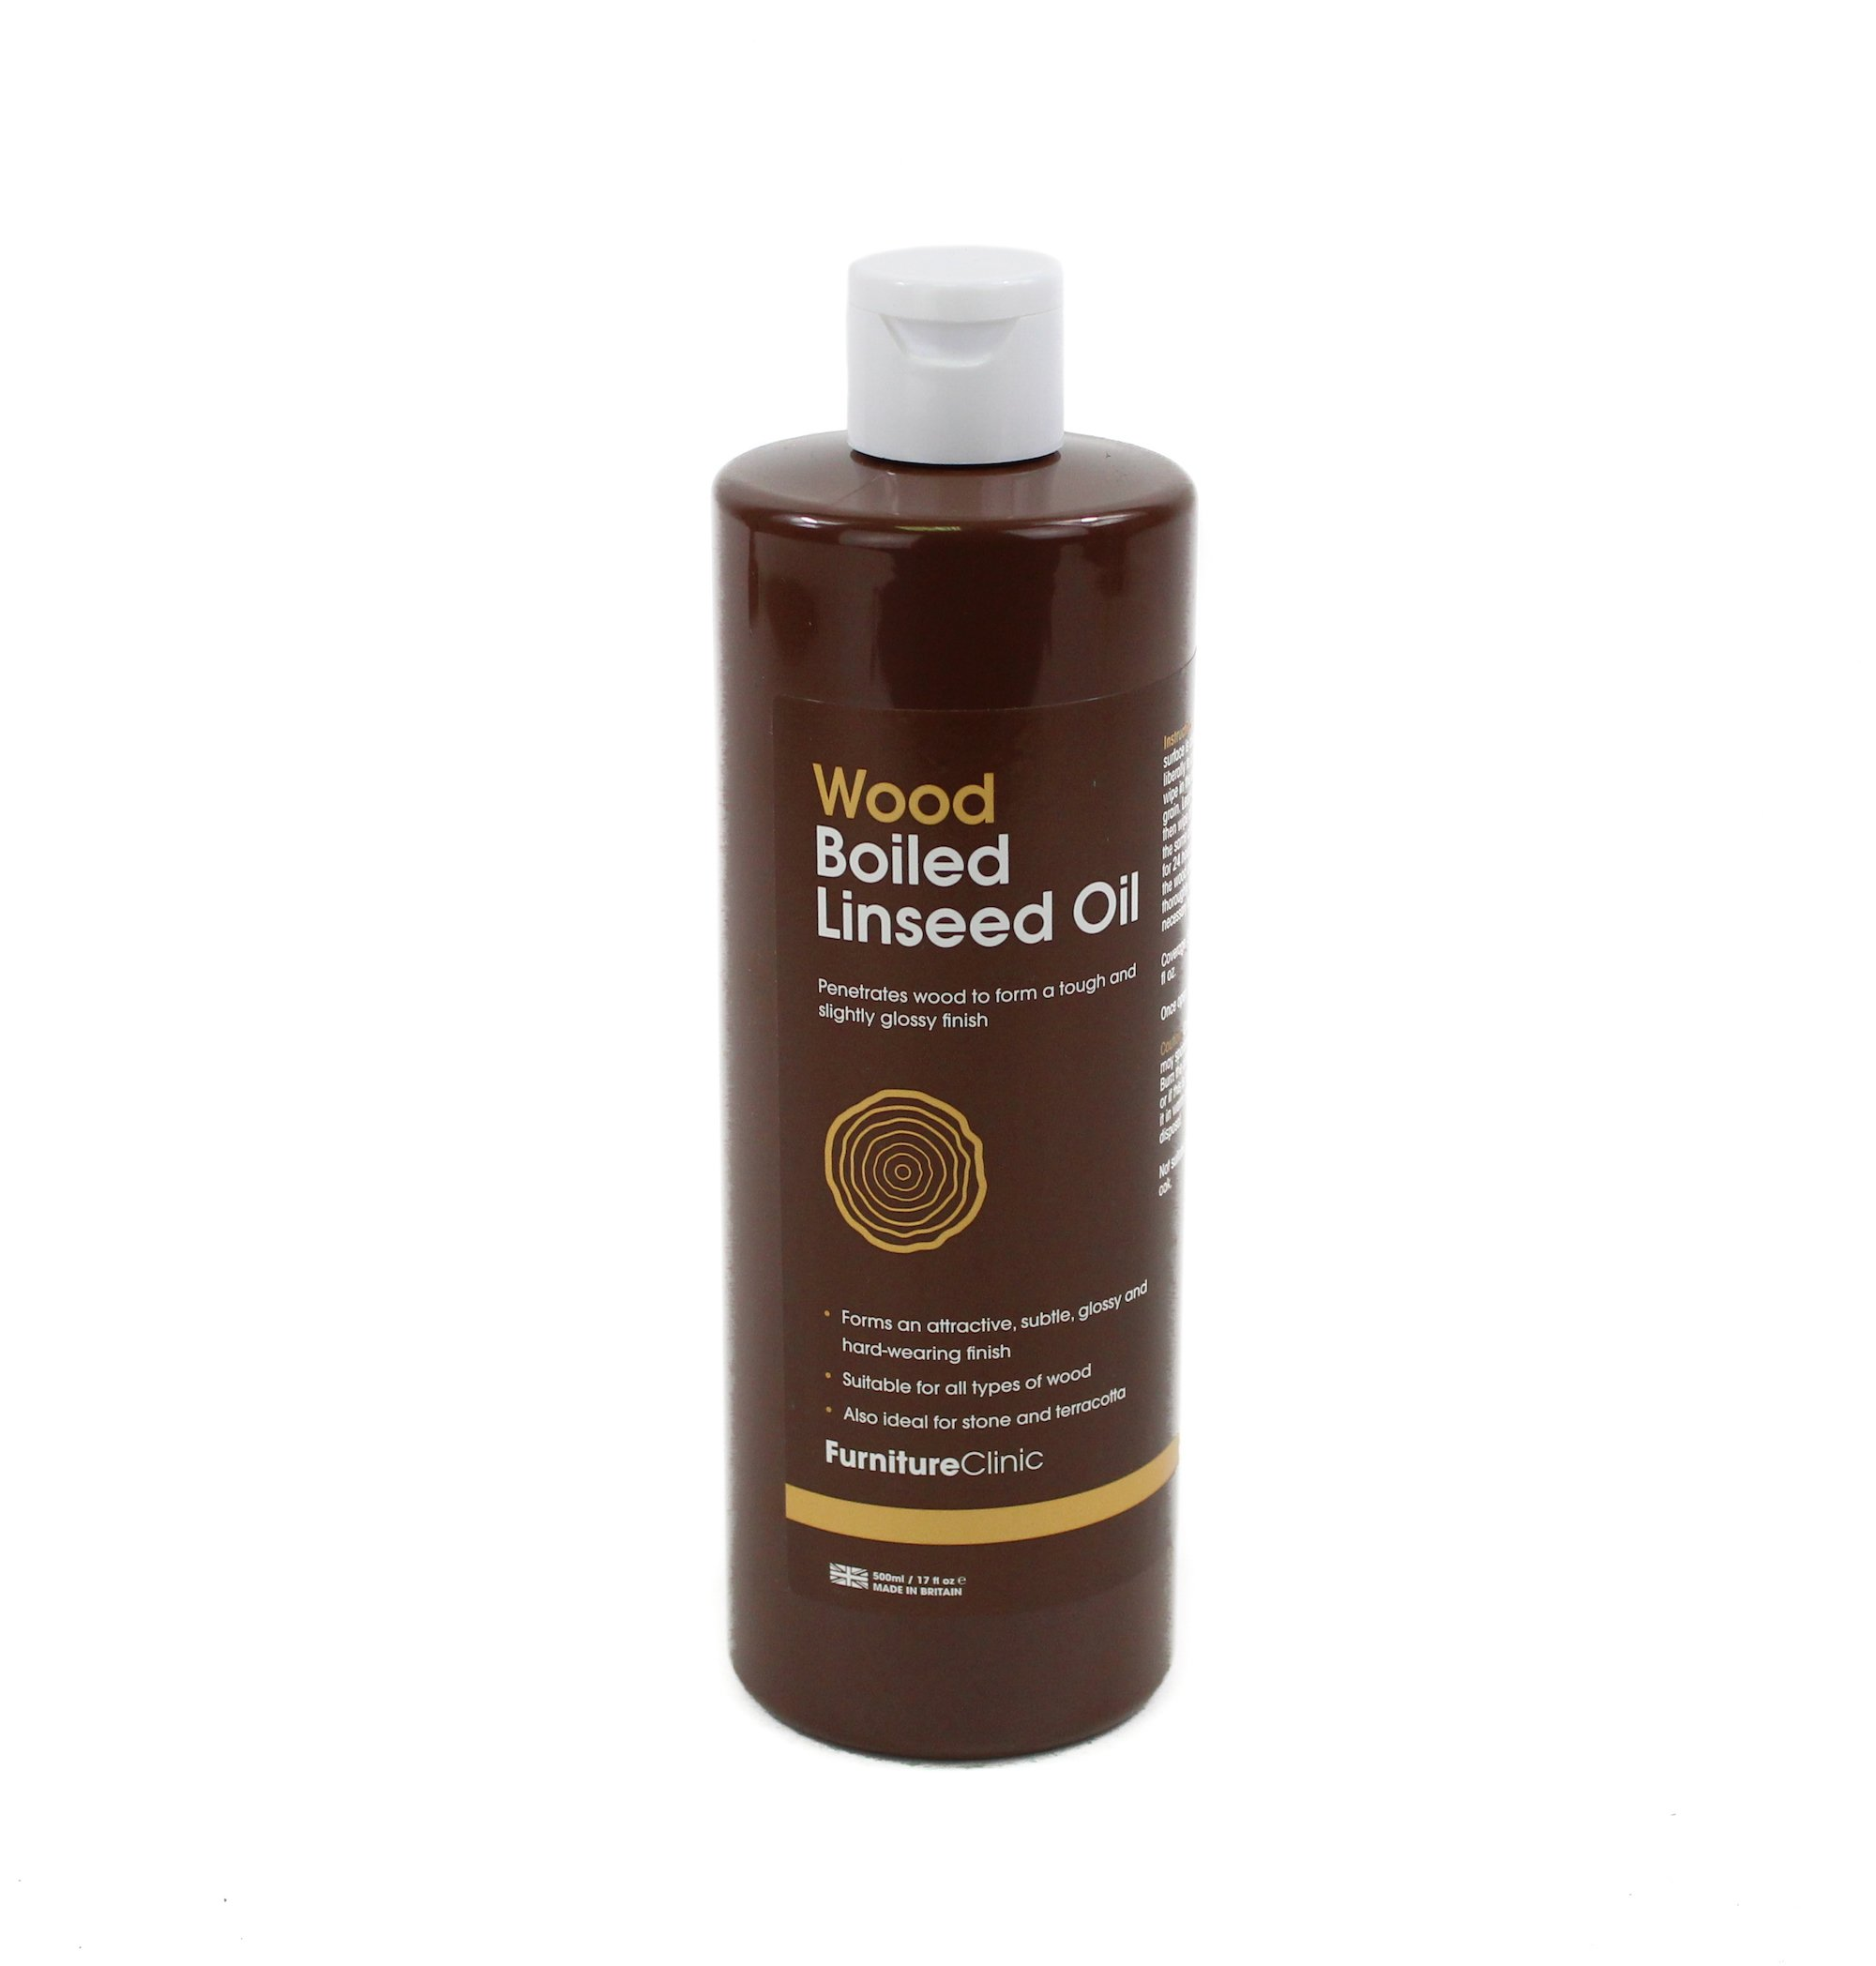 Furniture Clinic Boiled Linseed Oil for Wood Furniture & More   500ml Refined Oil   Glossy Finish for furniture, table tops, stone & metal